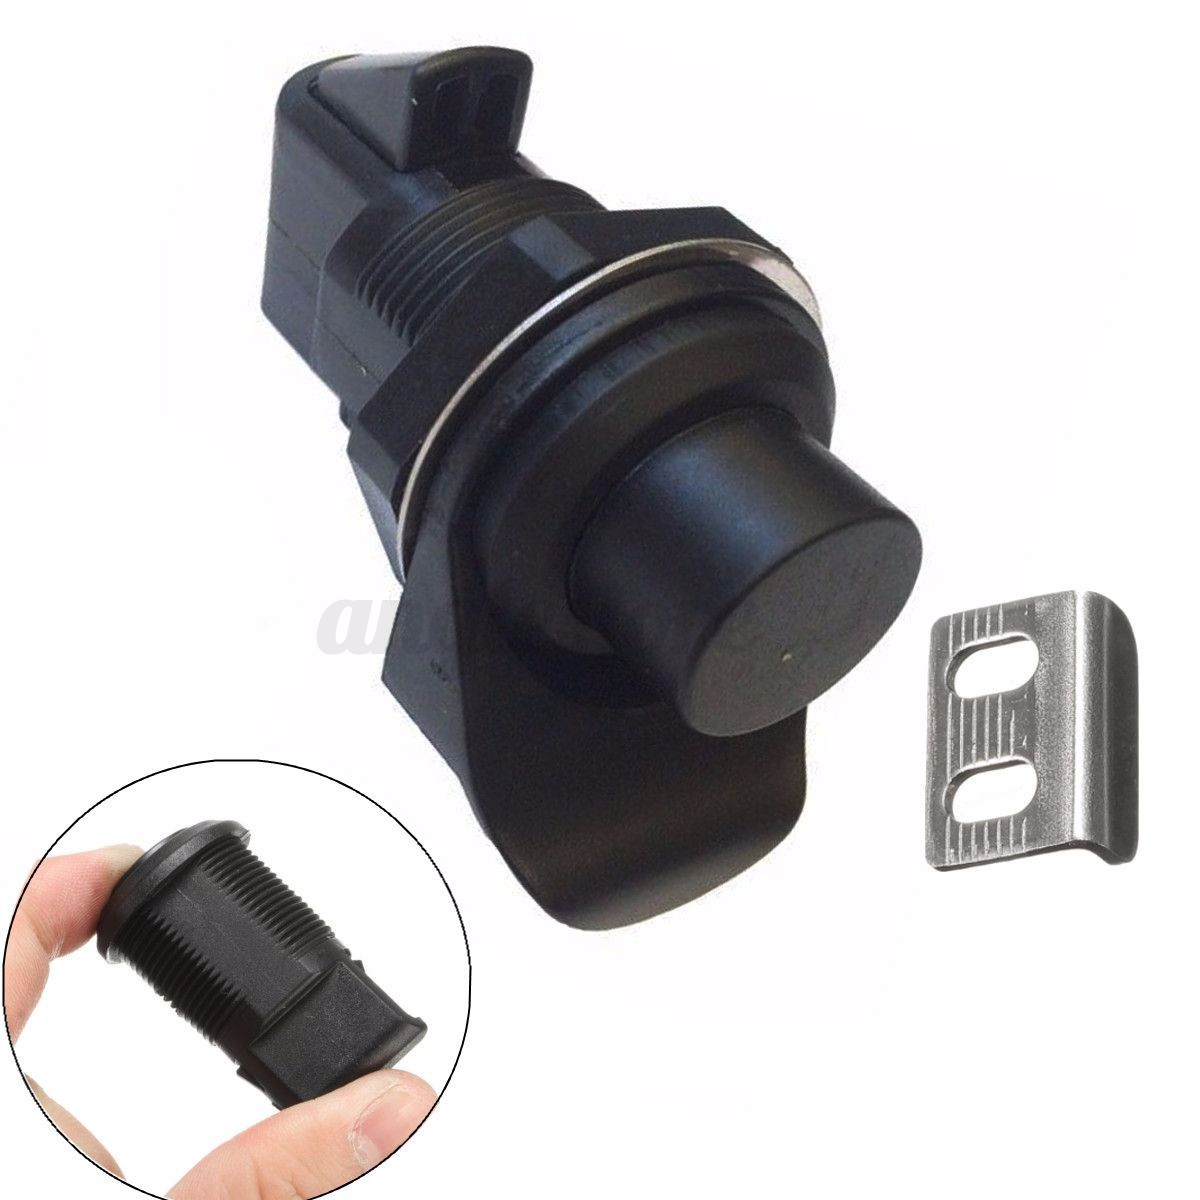 Small surface mounted replacement lock for antique furniture ebay - Push Button Latch Replacement For Boat Door Glovebox Southco 93 304 Non Locking